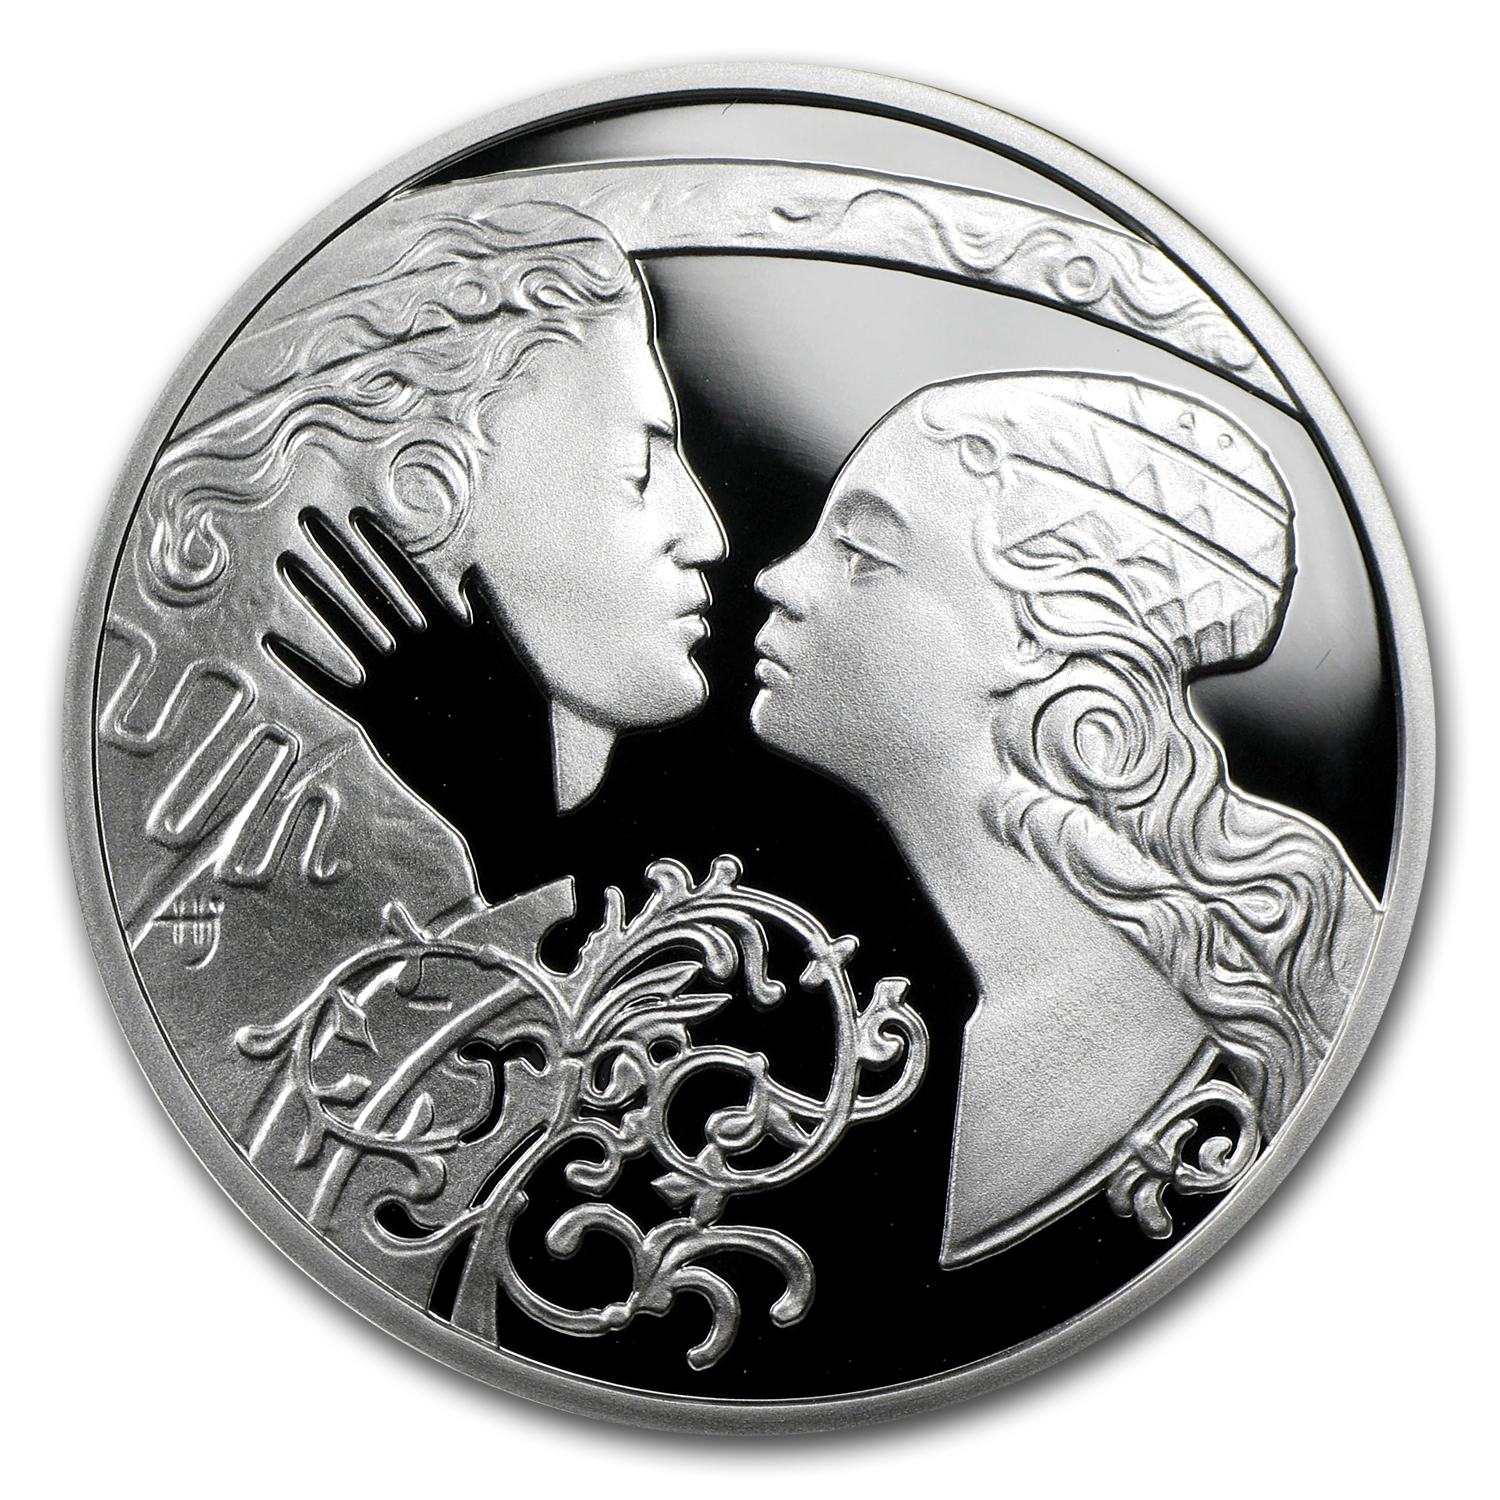 2010 Niue Proof Silver $1 Famous Love Stories Romeo and Juliet